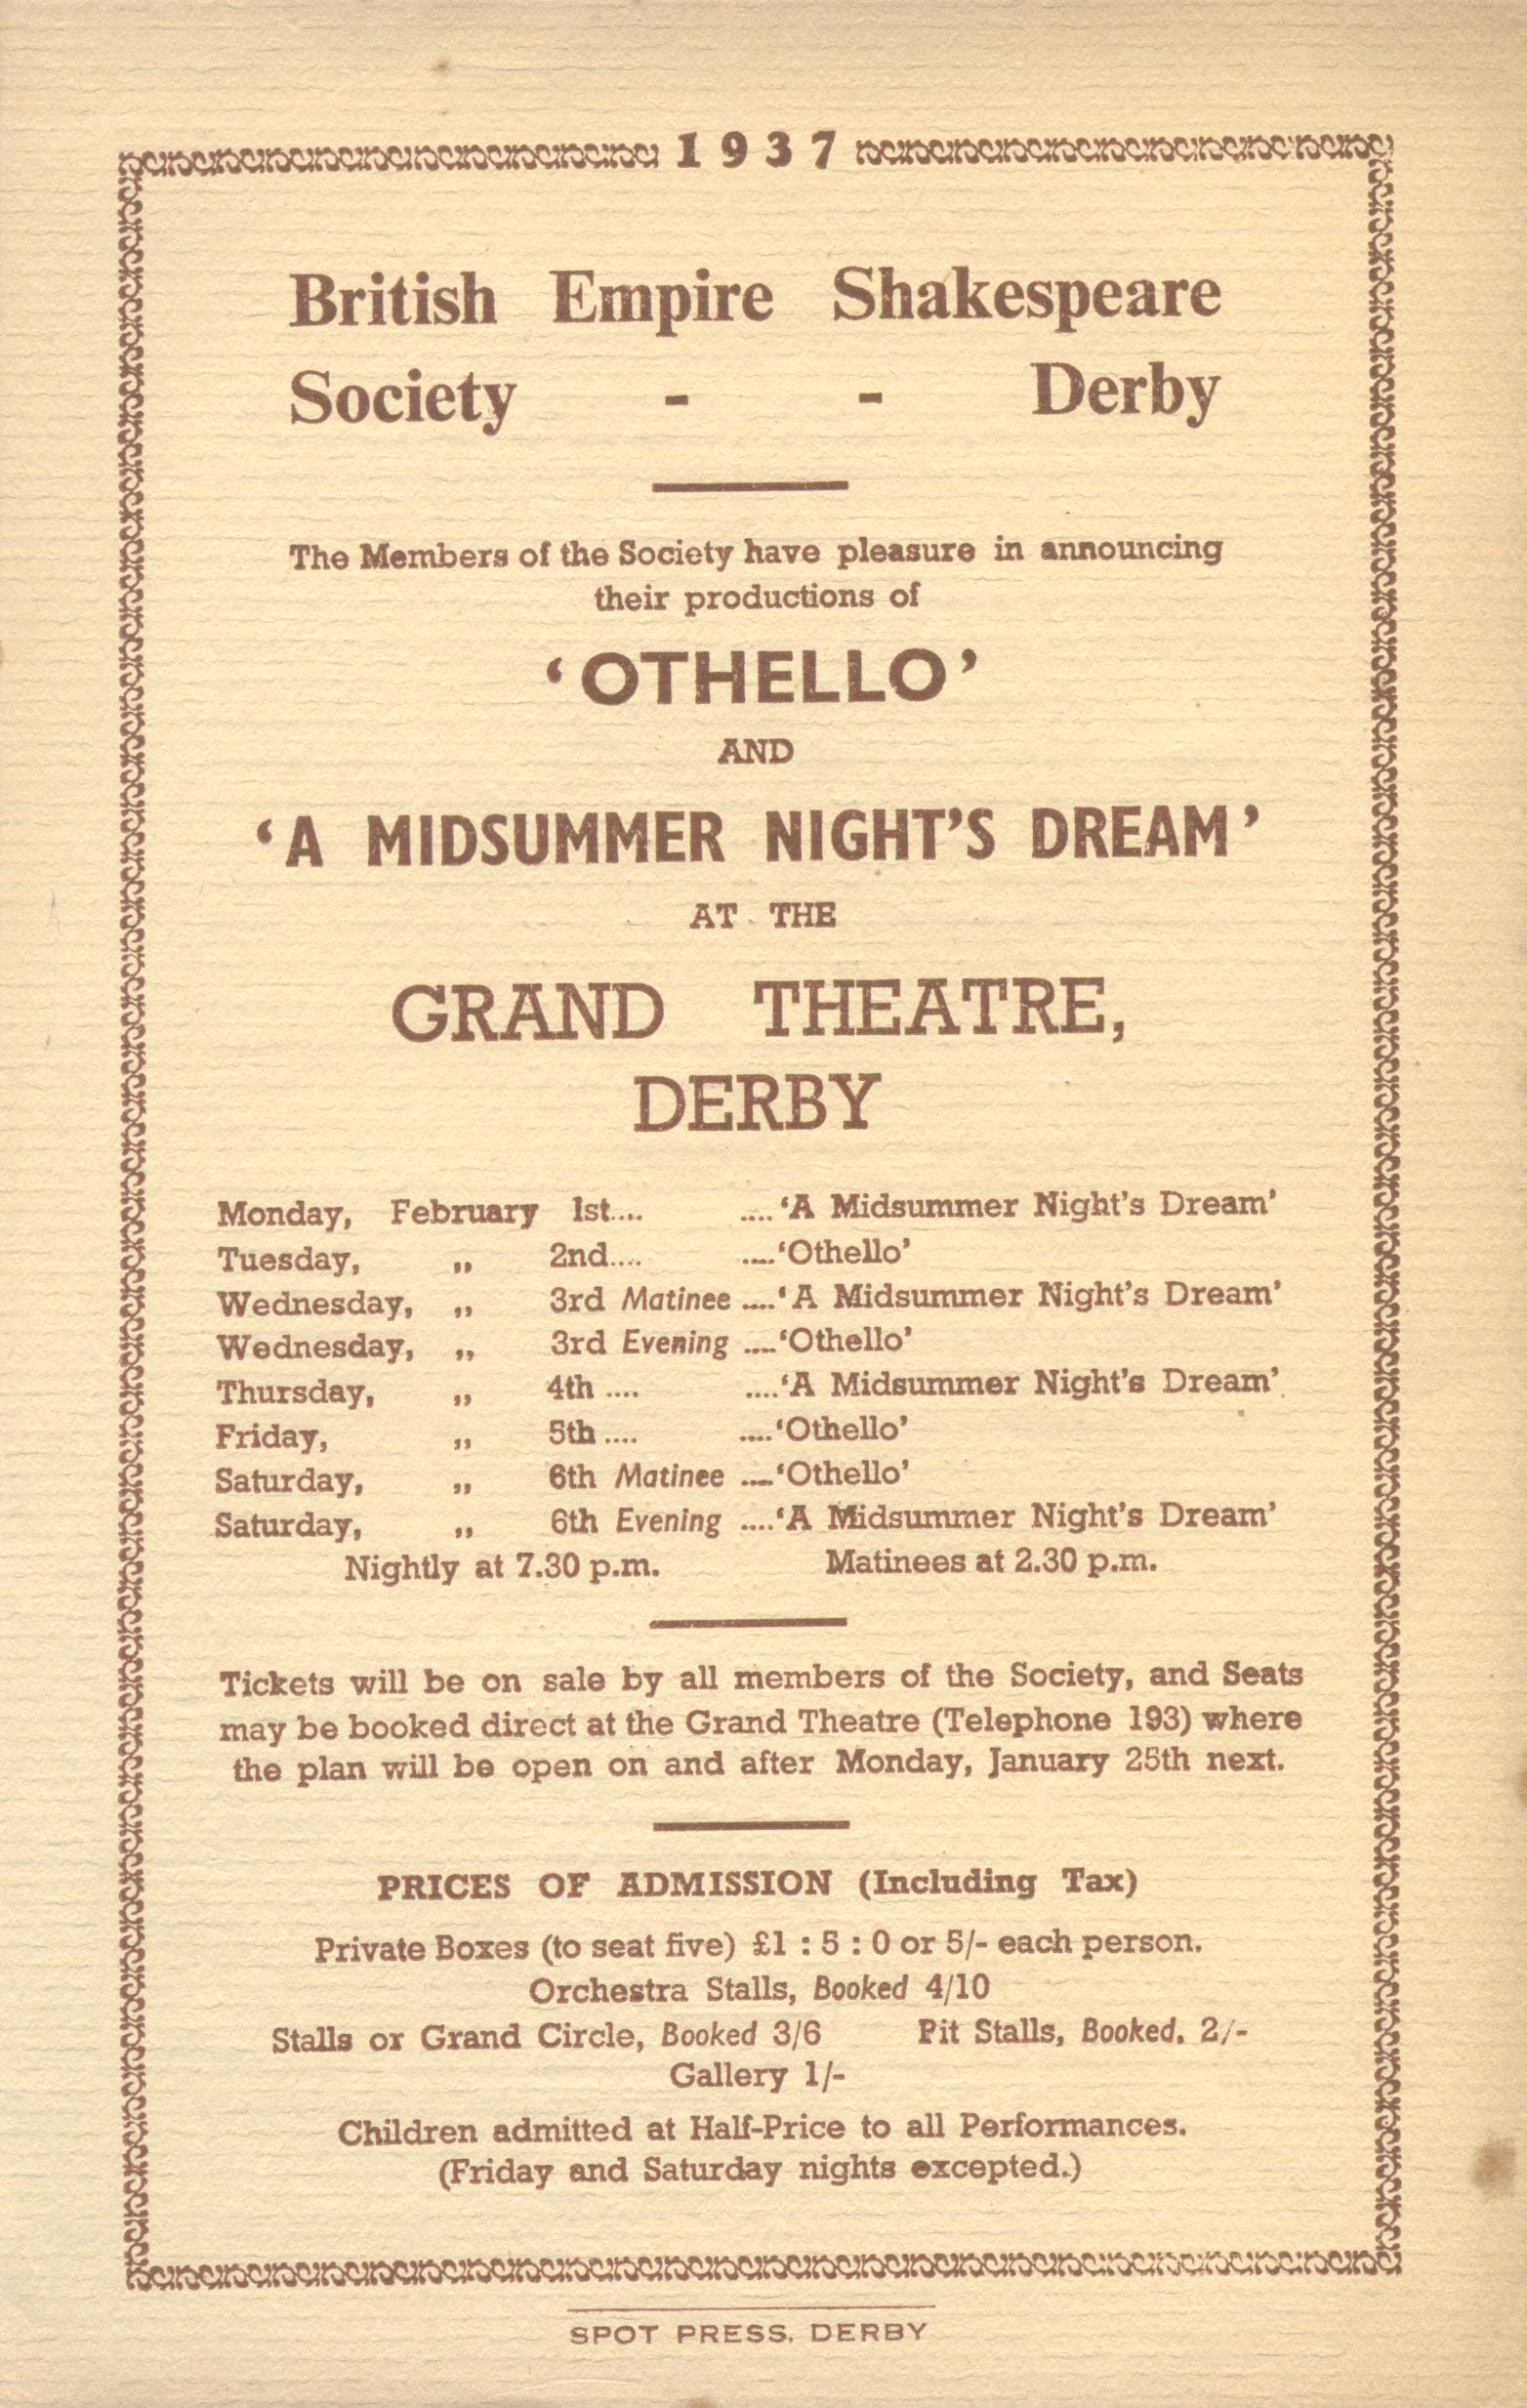 'Othello' & A Midsummer Night's Dream' 1937